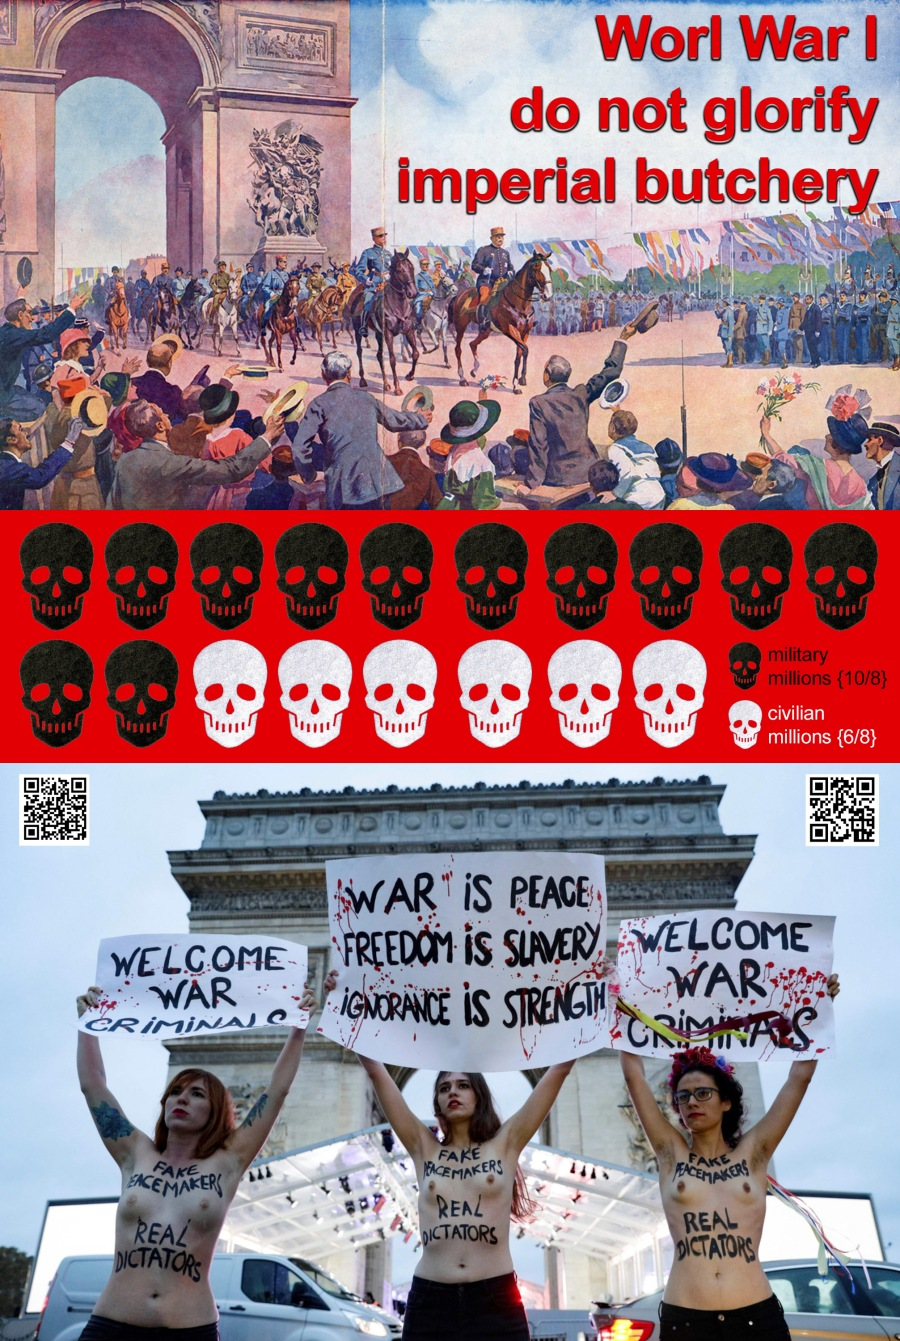 World-War-one_Do-not-glorify-imperial-butchery_Femen